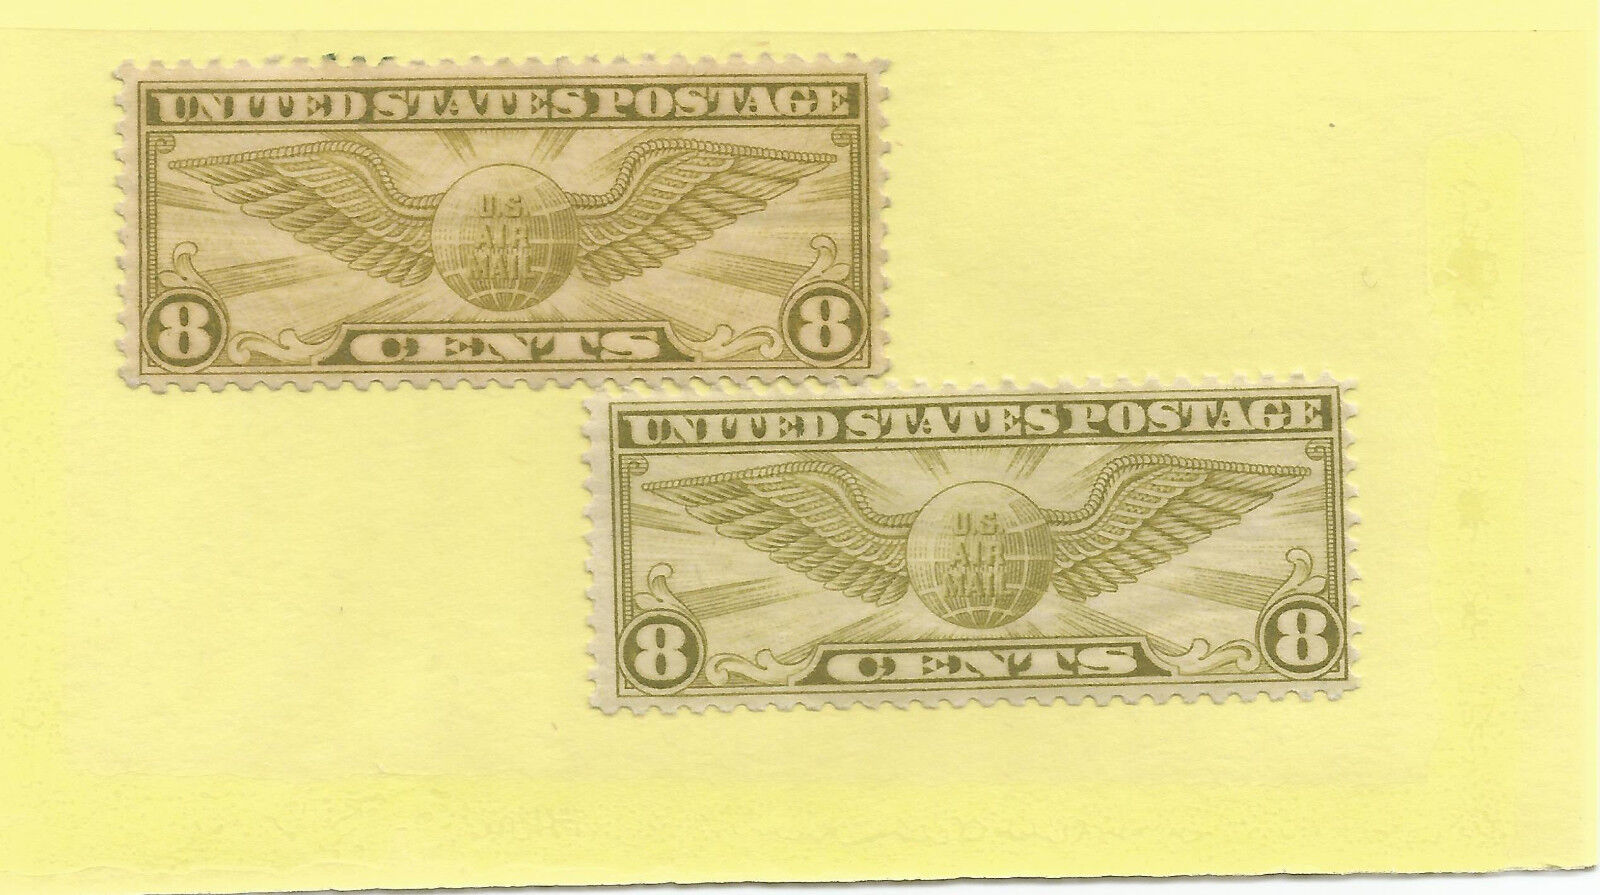 Scott # C17 old 1932 airmail US stamp og mint not hinged mnh buy one now!